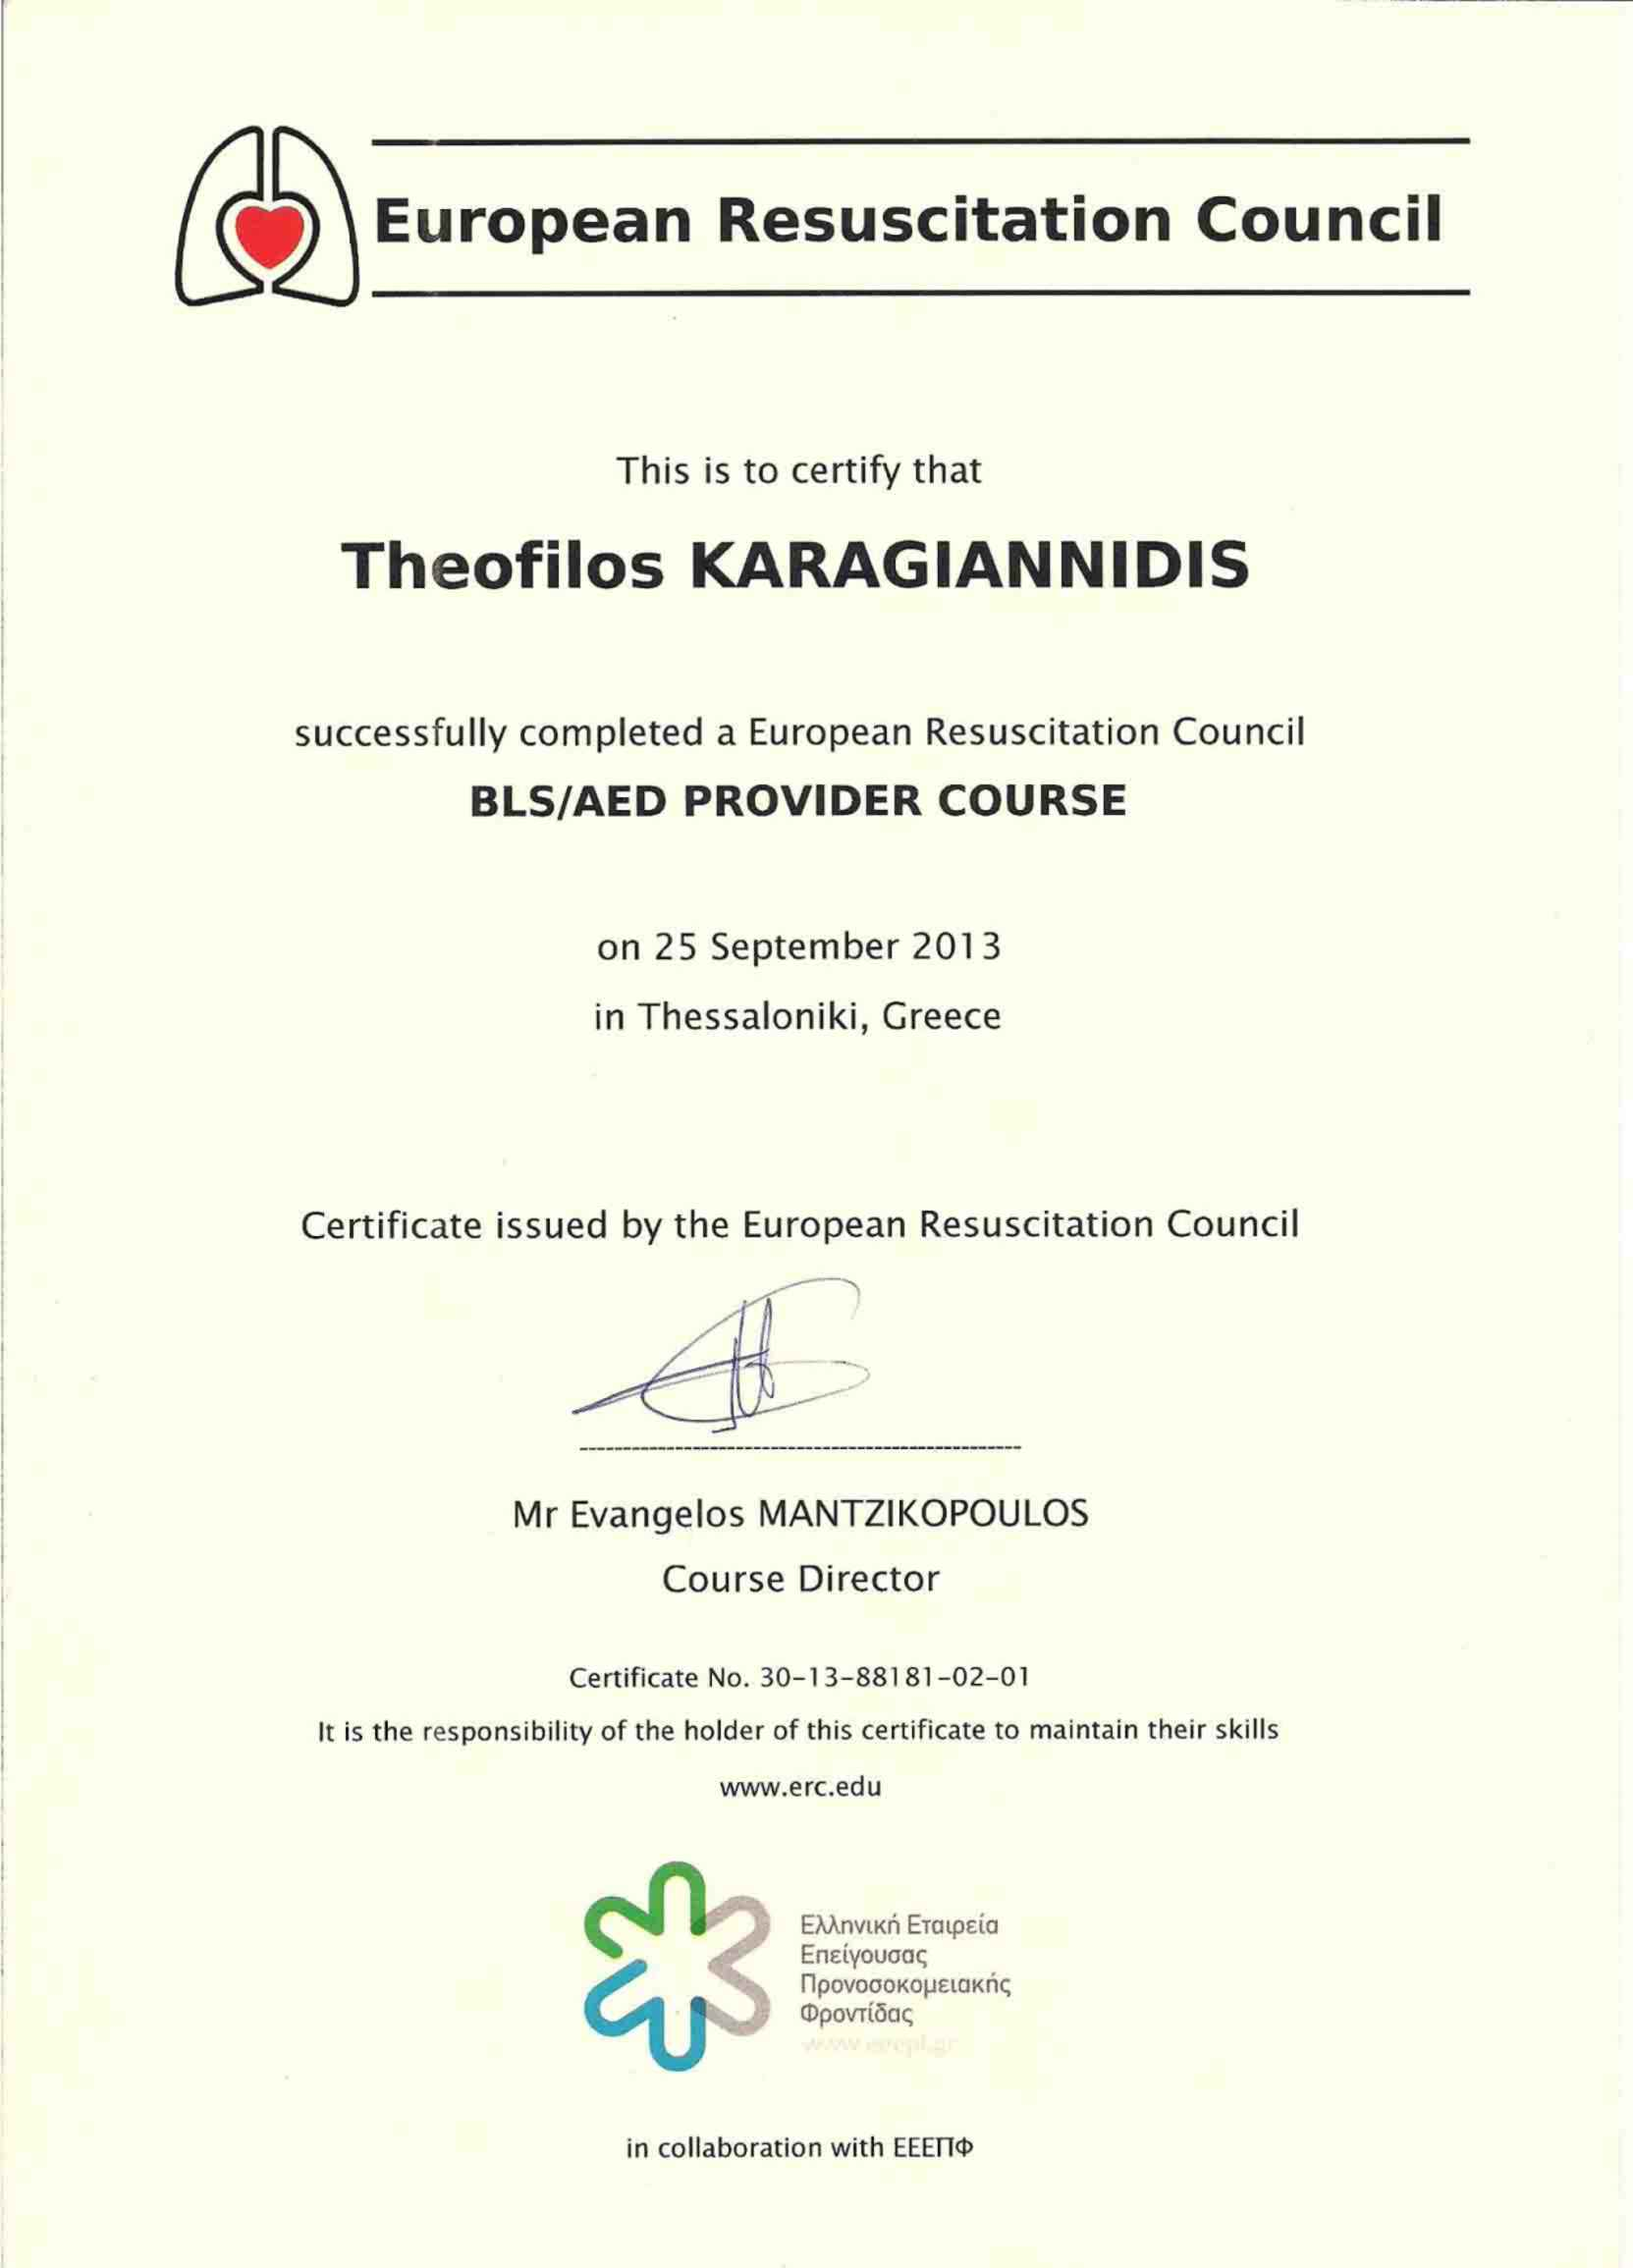 Theofilos karagiannidis bayt training institute european resuscitation council xflitez Gallery